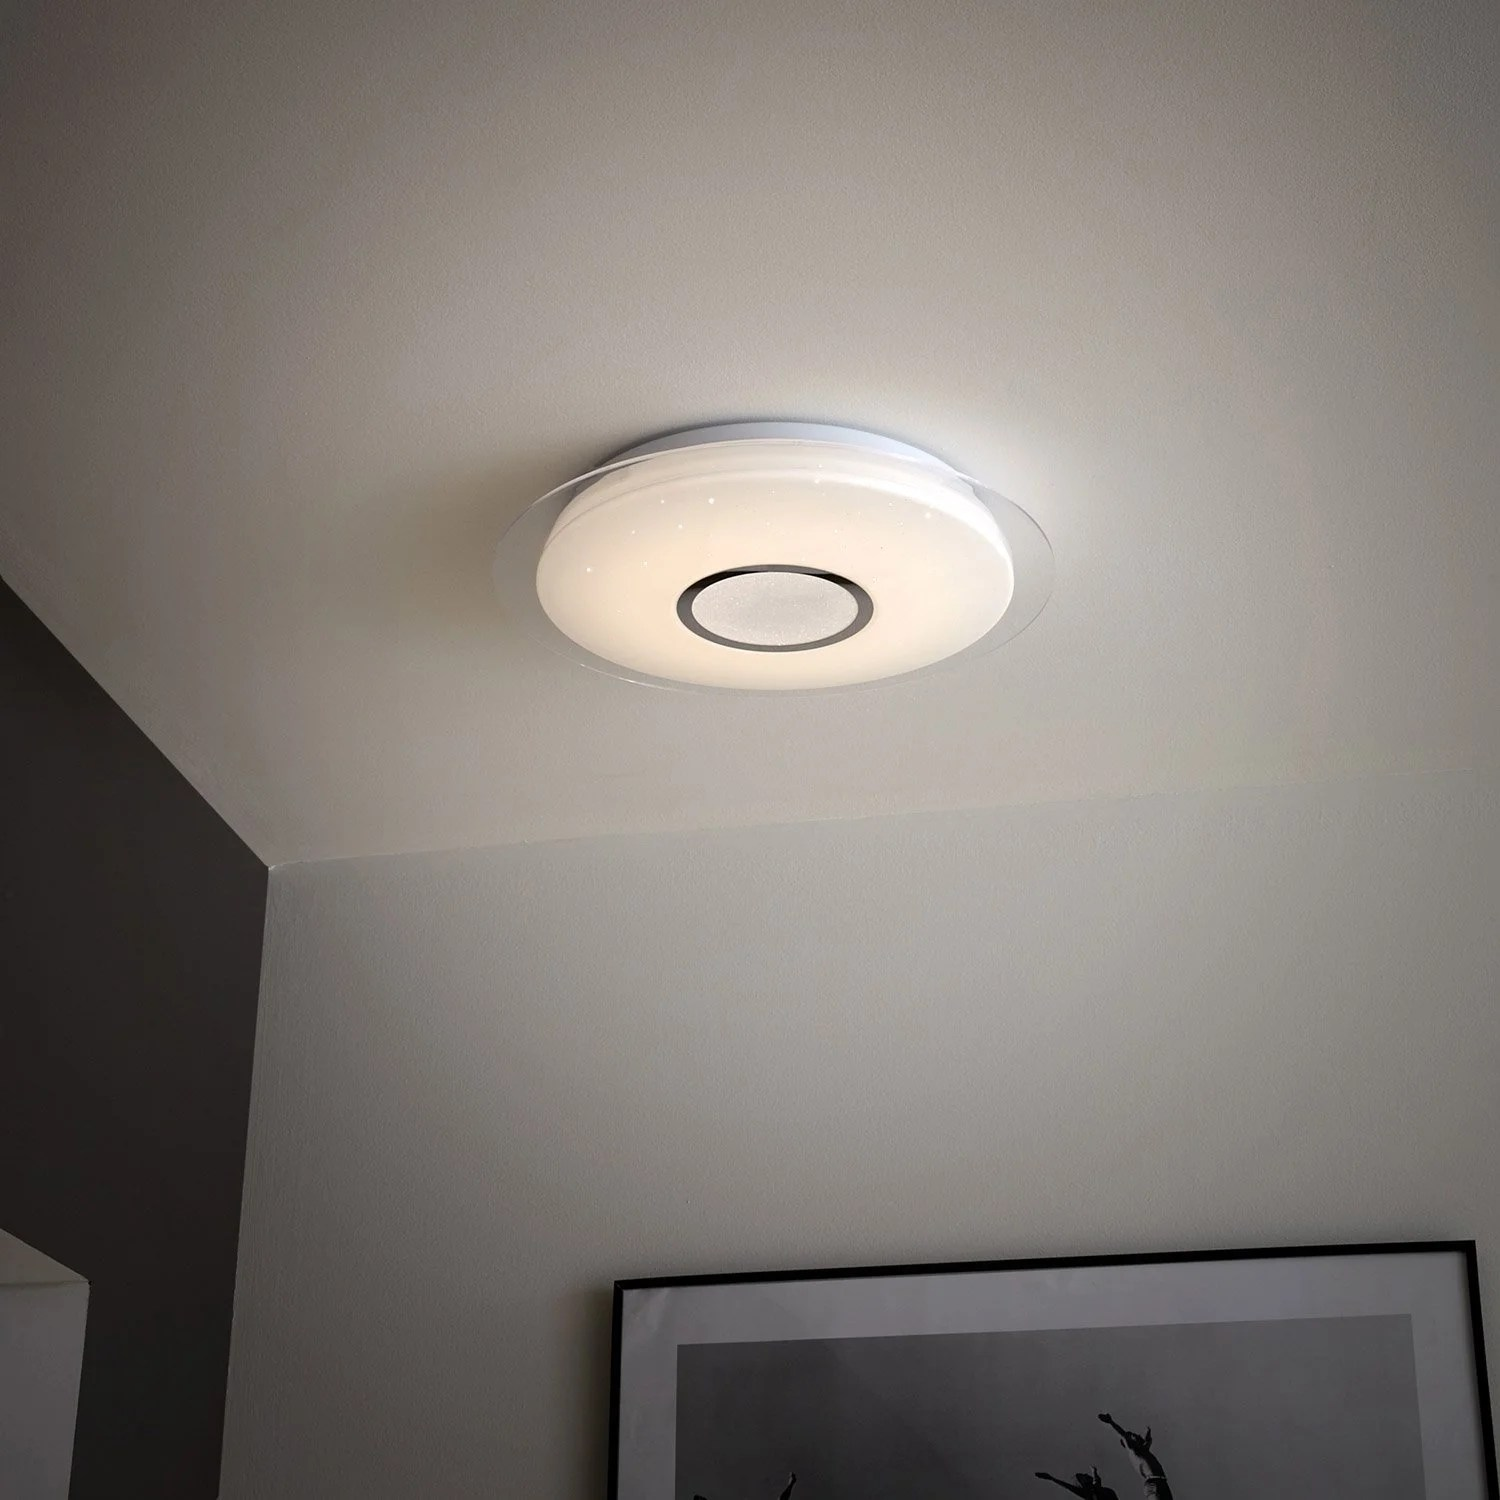 Plafonnier Led Vizzini Ceiling Built In Led Design Plastic Vizzini White 1 X 25 W Inspire